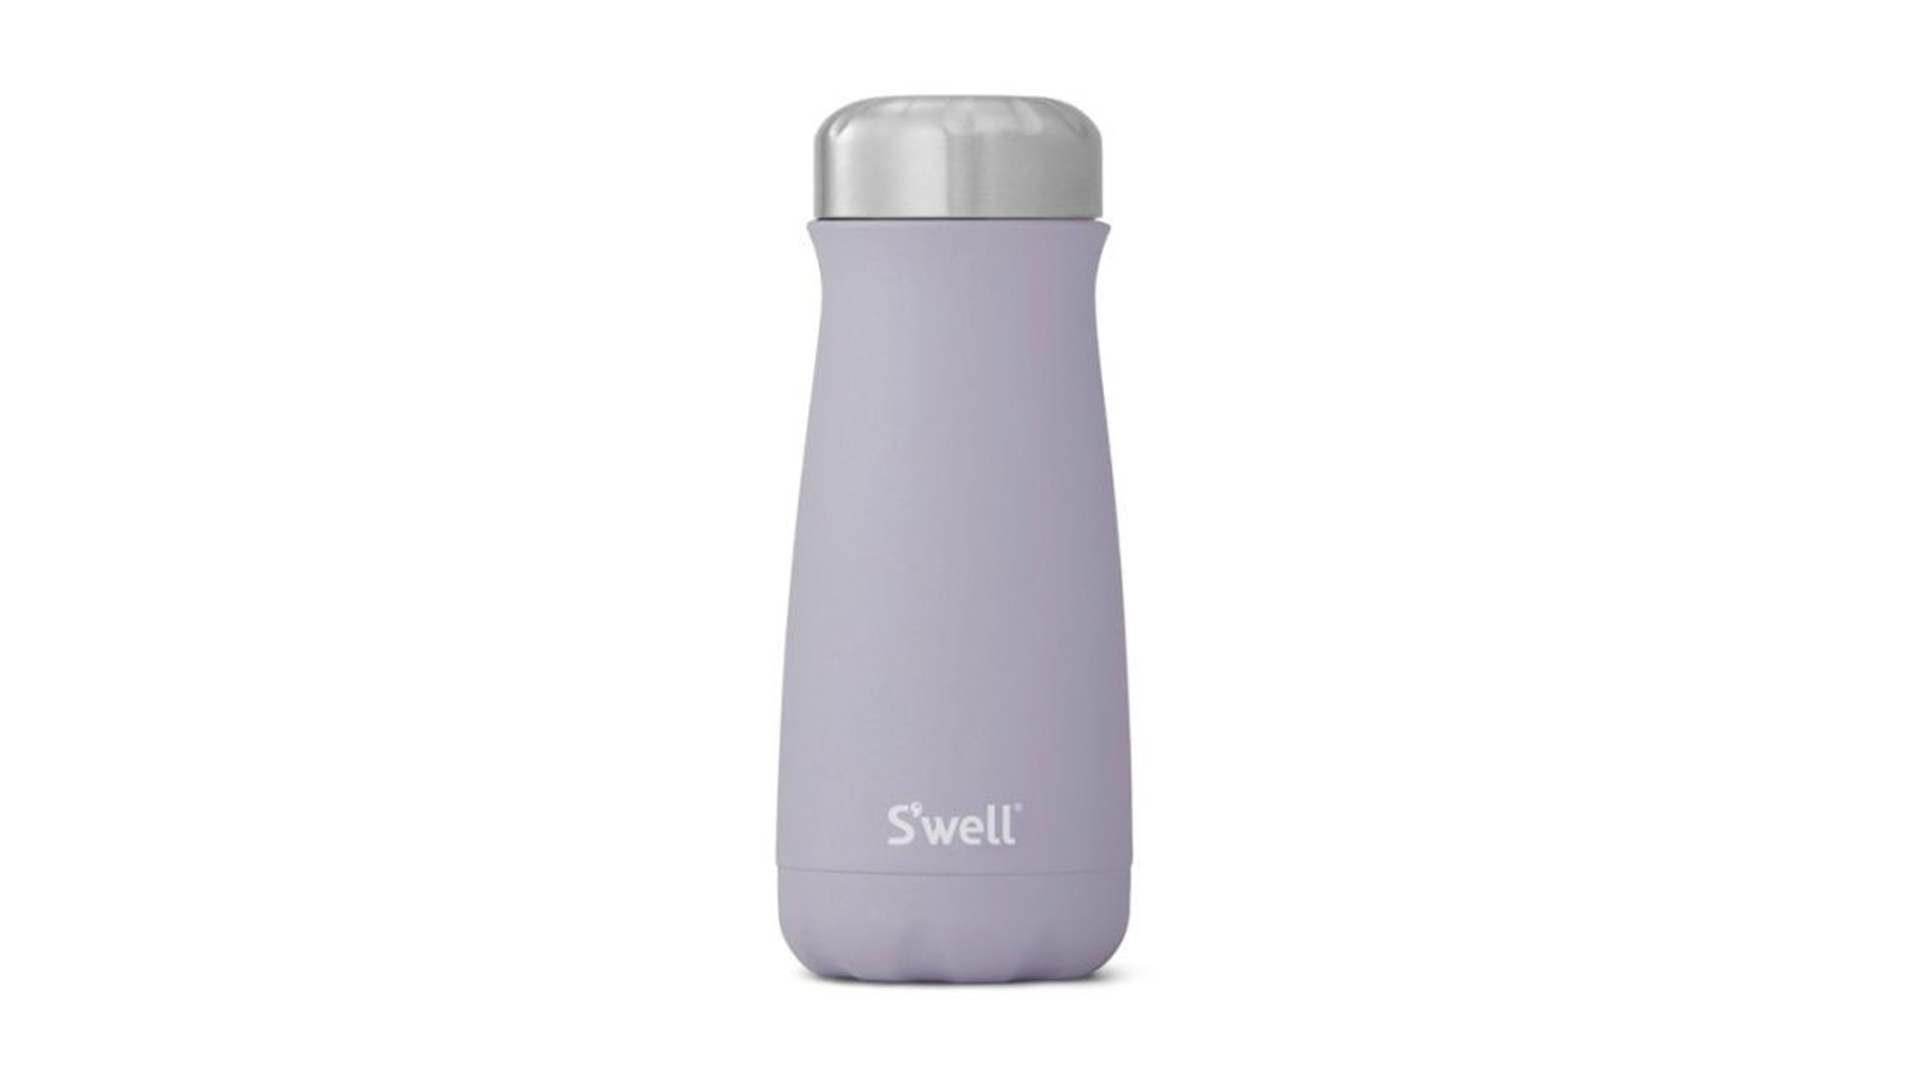 This water bottle from S'well is a must-have item for school